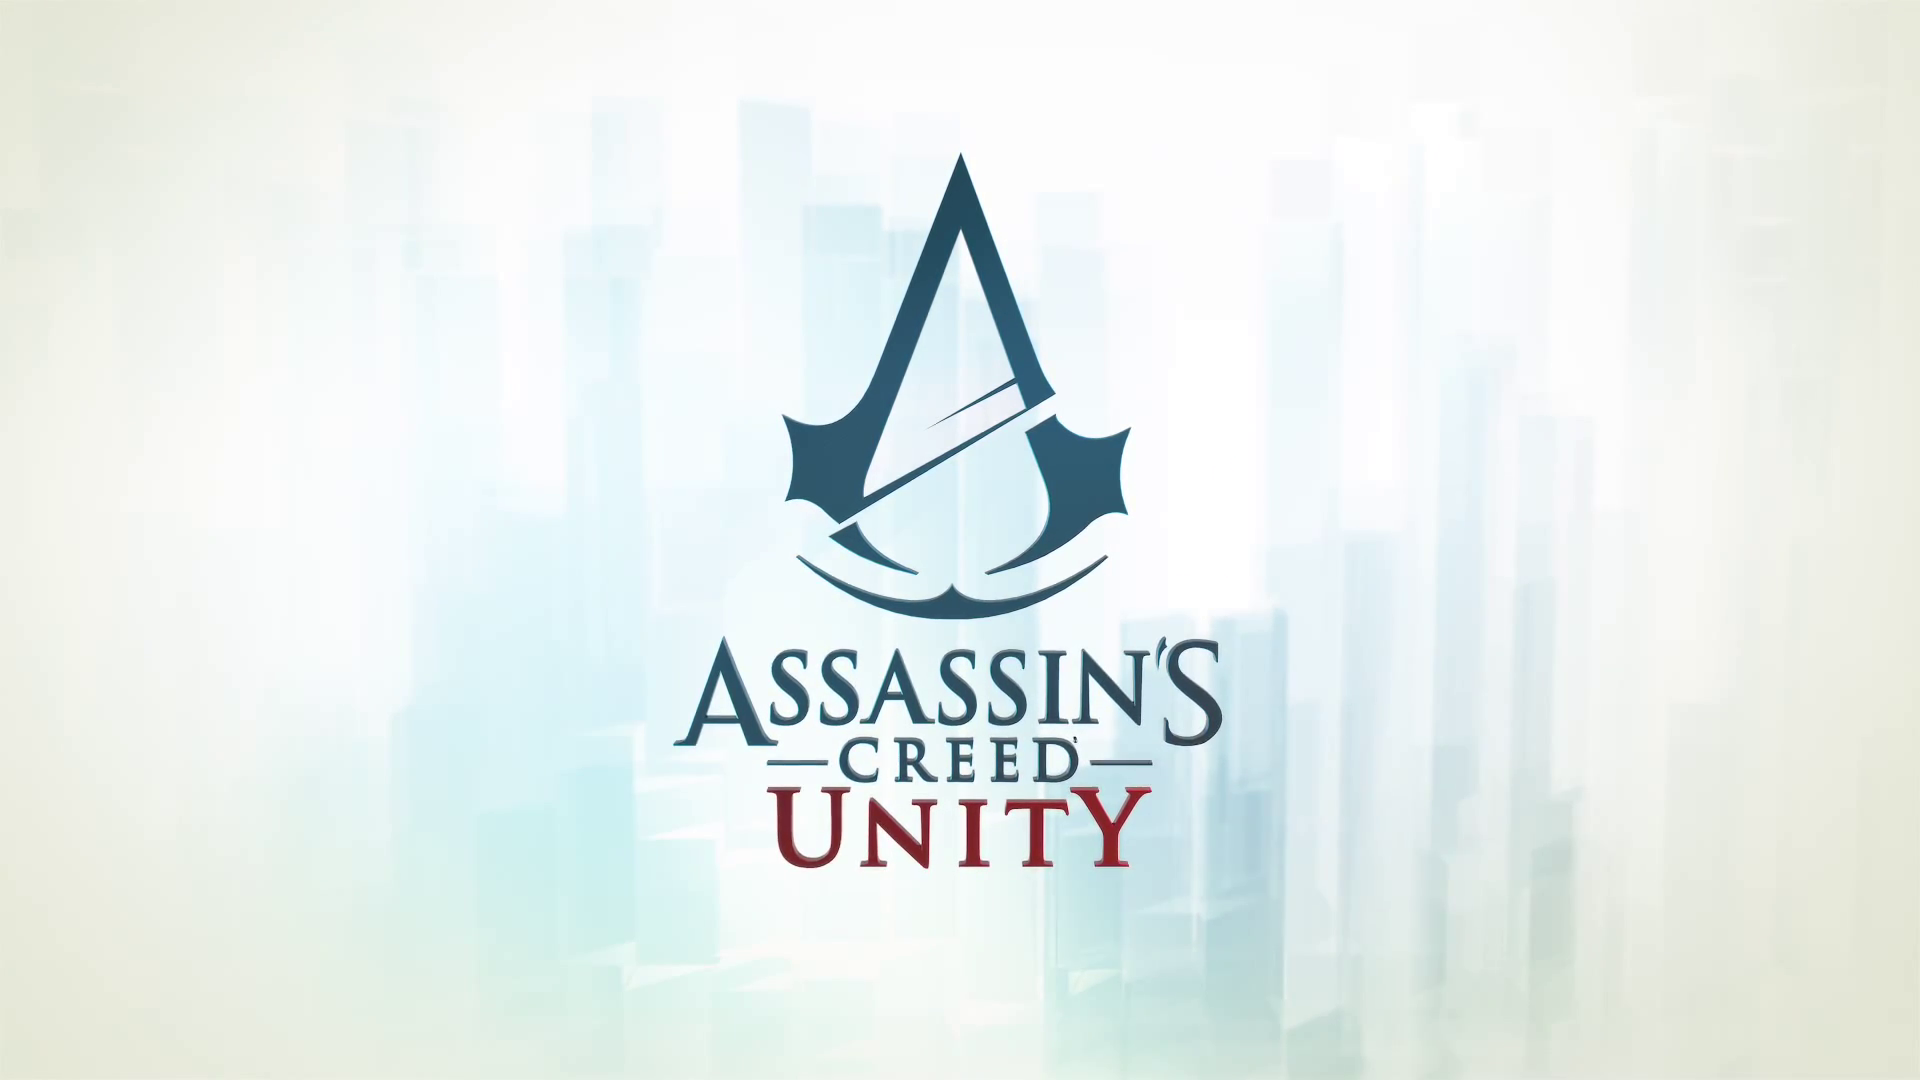 Download Assassins Creed Unity Logo Wallpaper 40770 1920x1080 Px